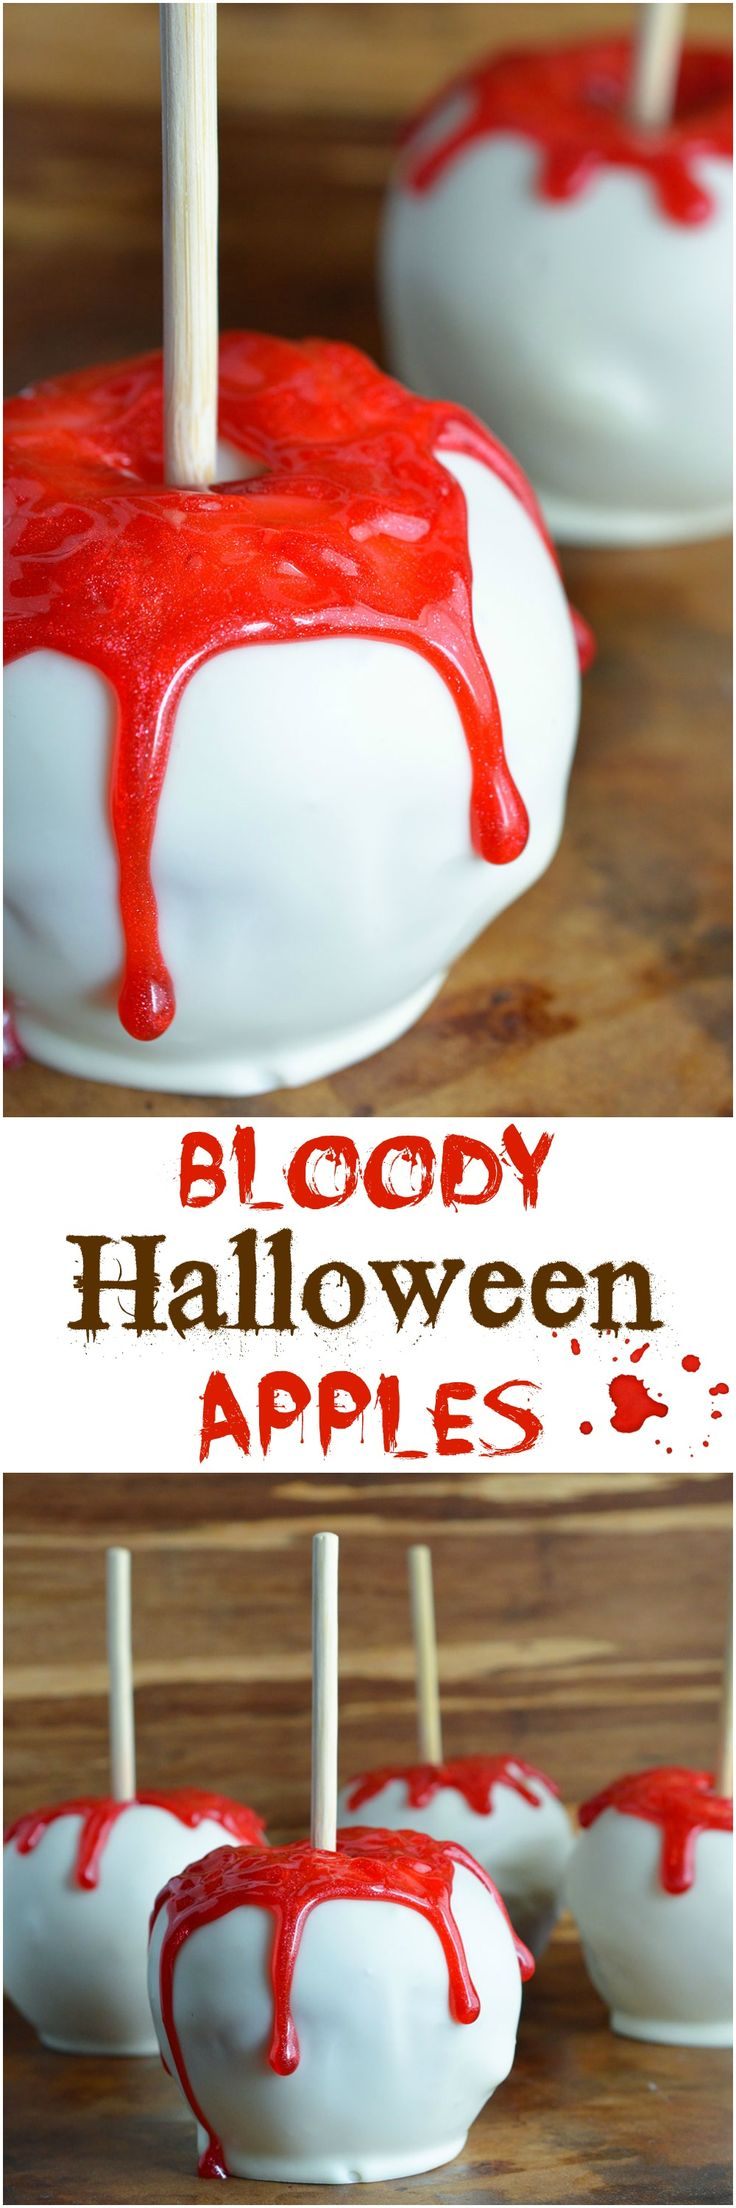 Bloody White Chocolate Apples are quick, easy and SPOOKY! This fun Halloween recipe will be a hit with kids and adults! Your Halloween Party guests will be screaming for more! #halloween #wonkywonderful